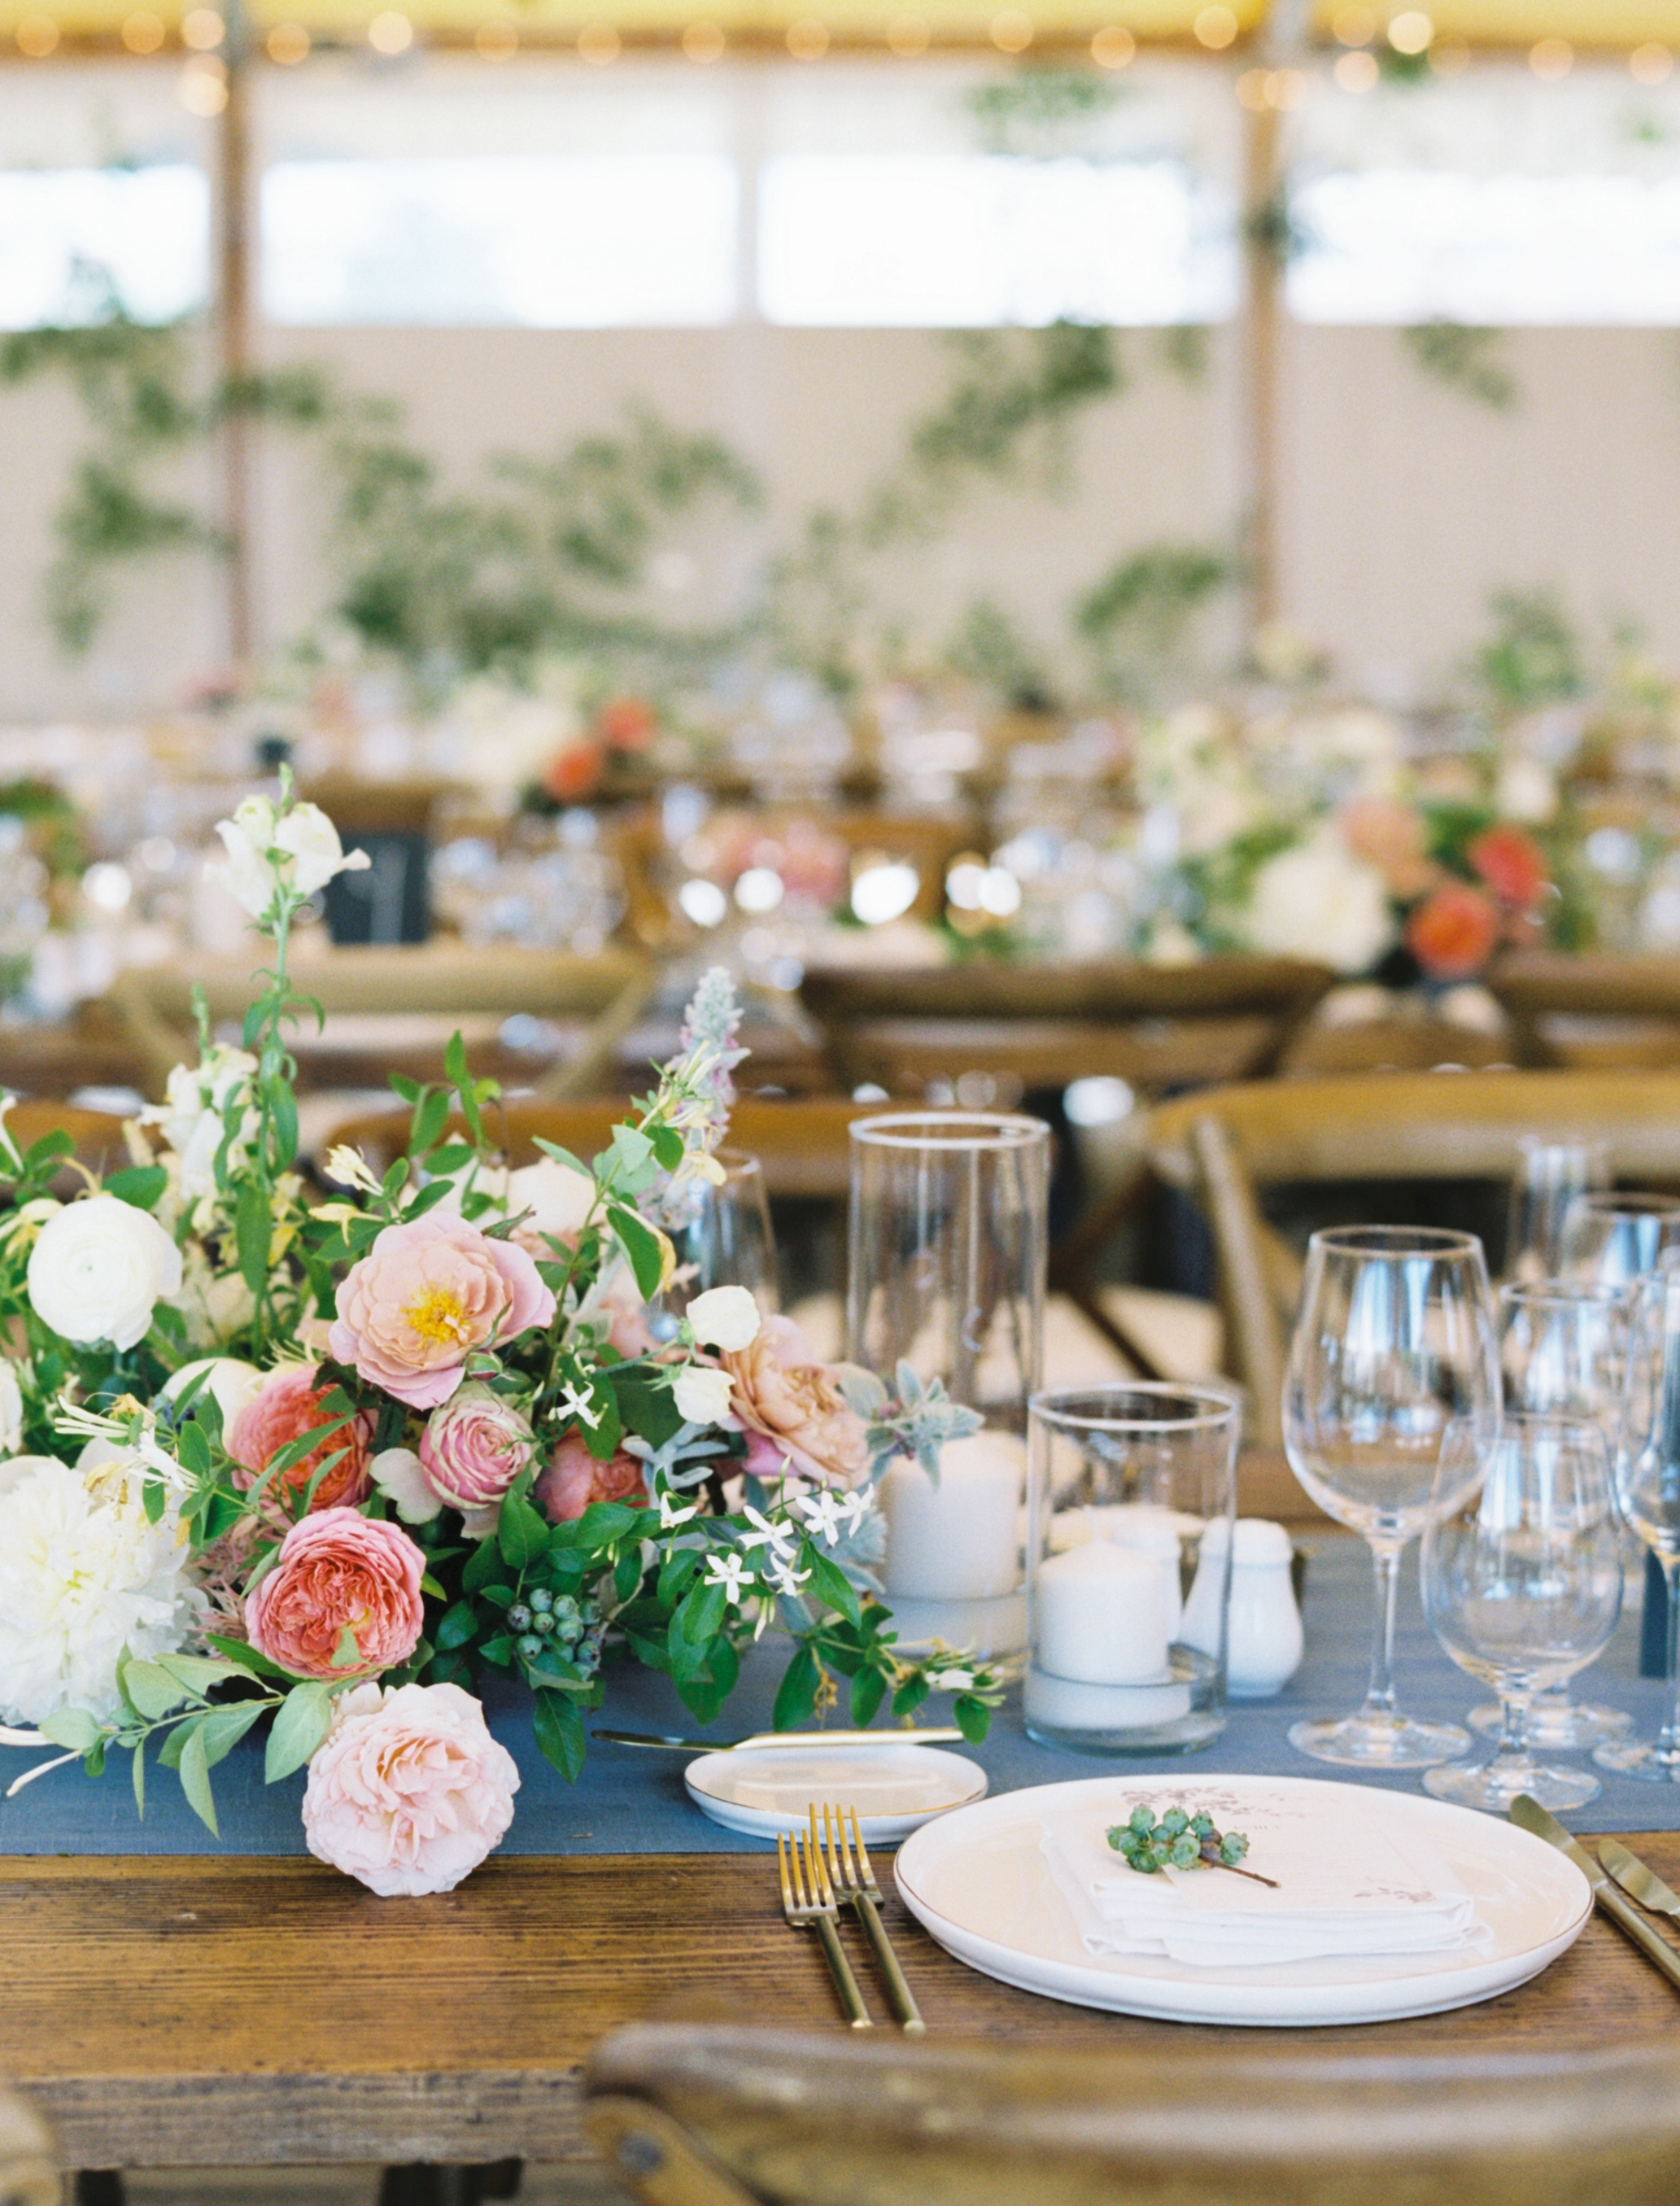 3 steps to start planning your wedding like a pro